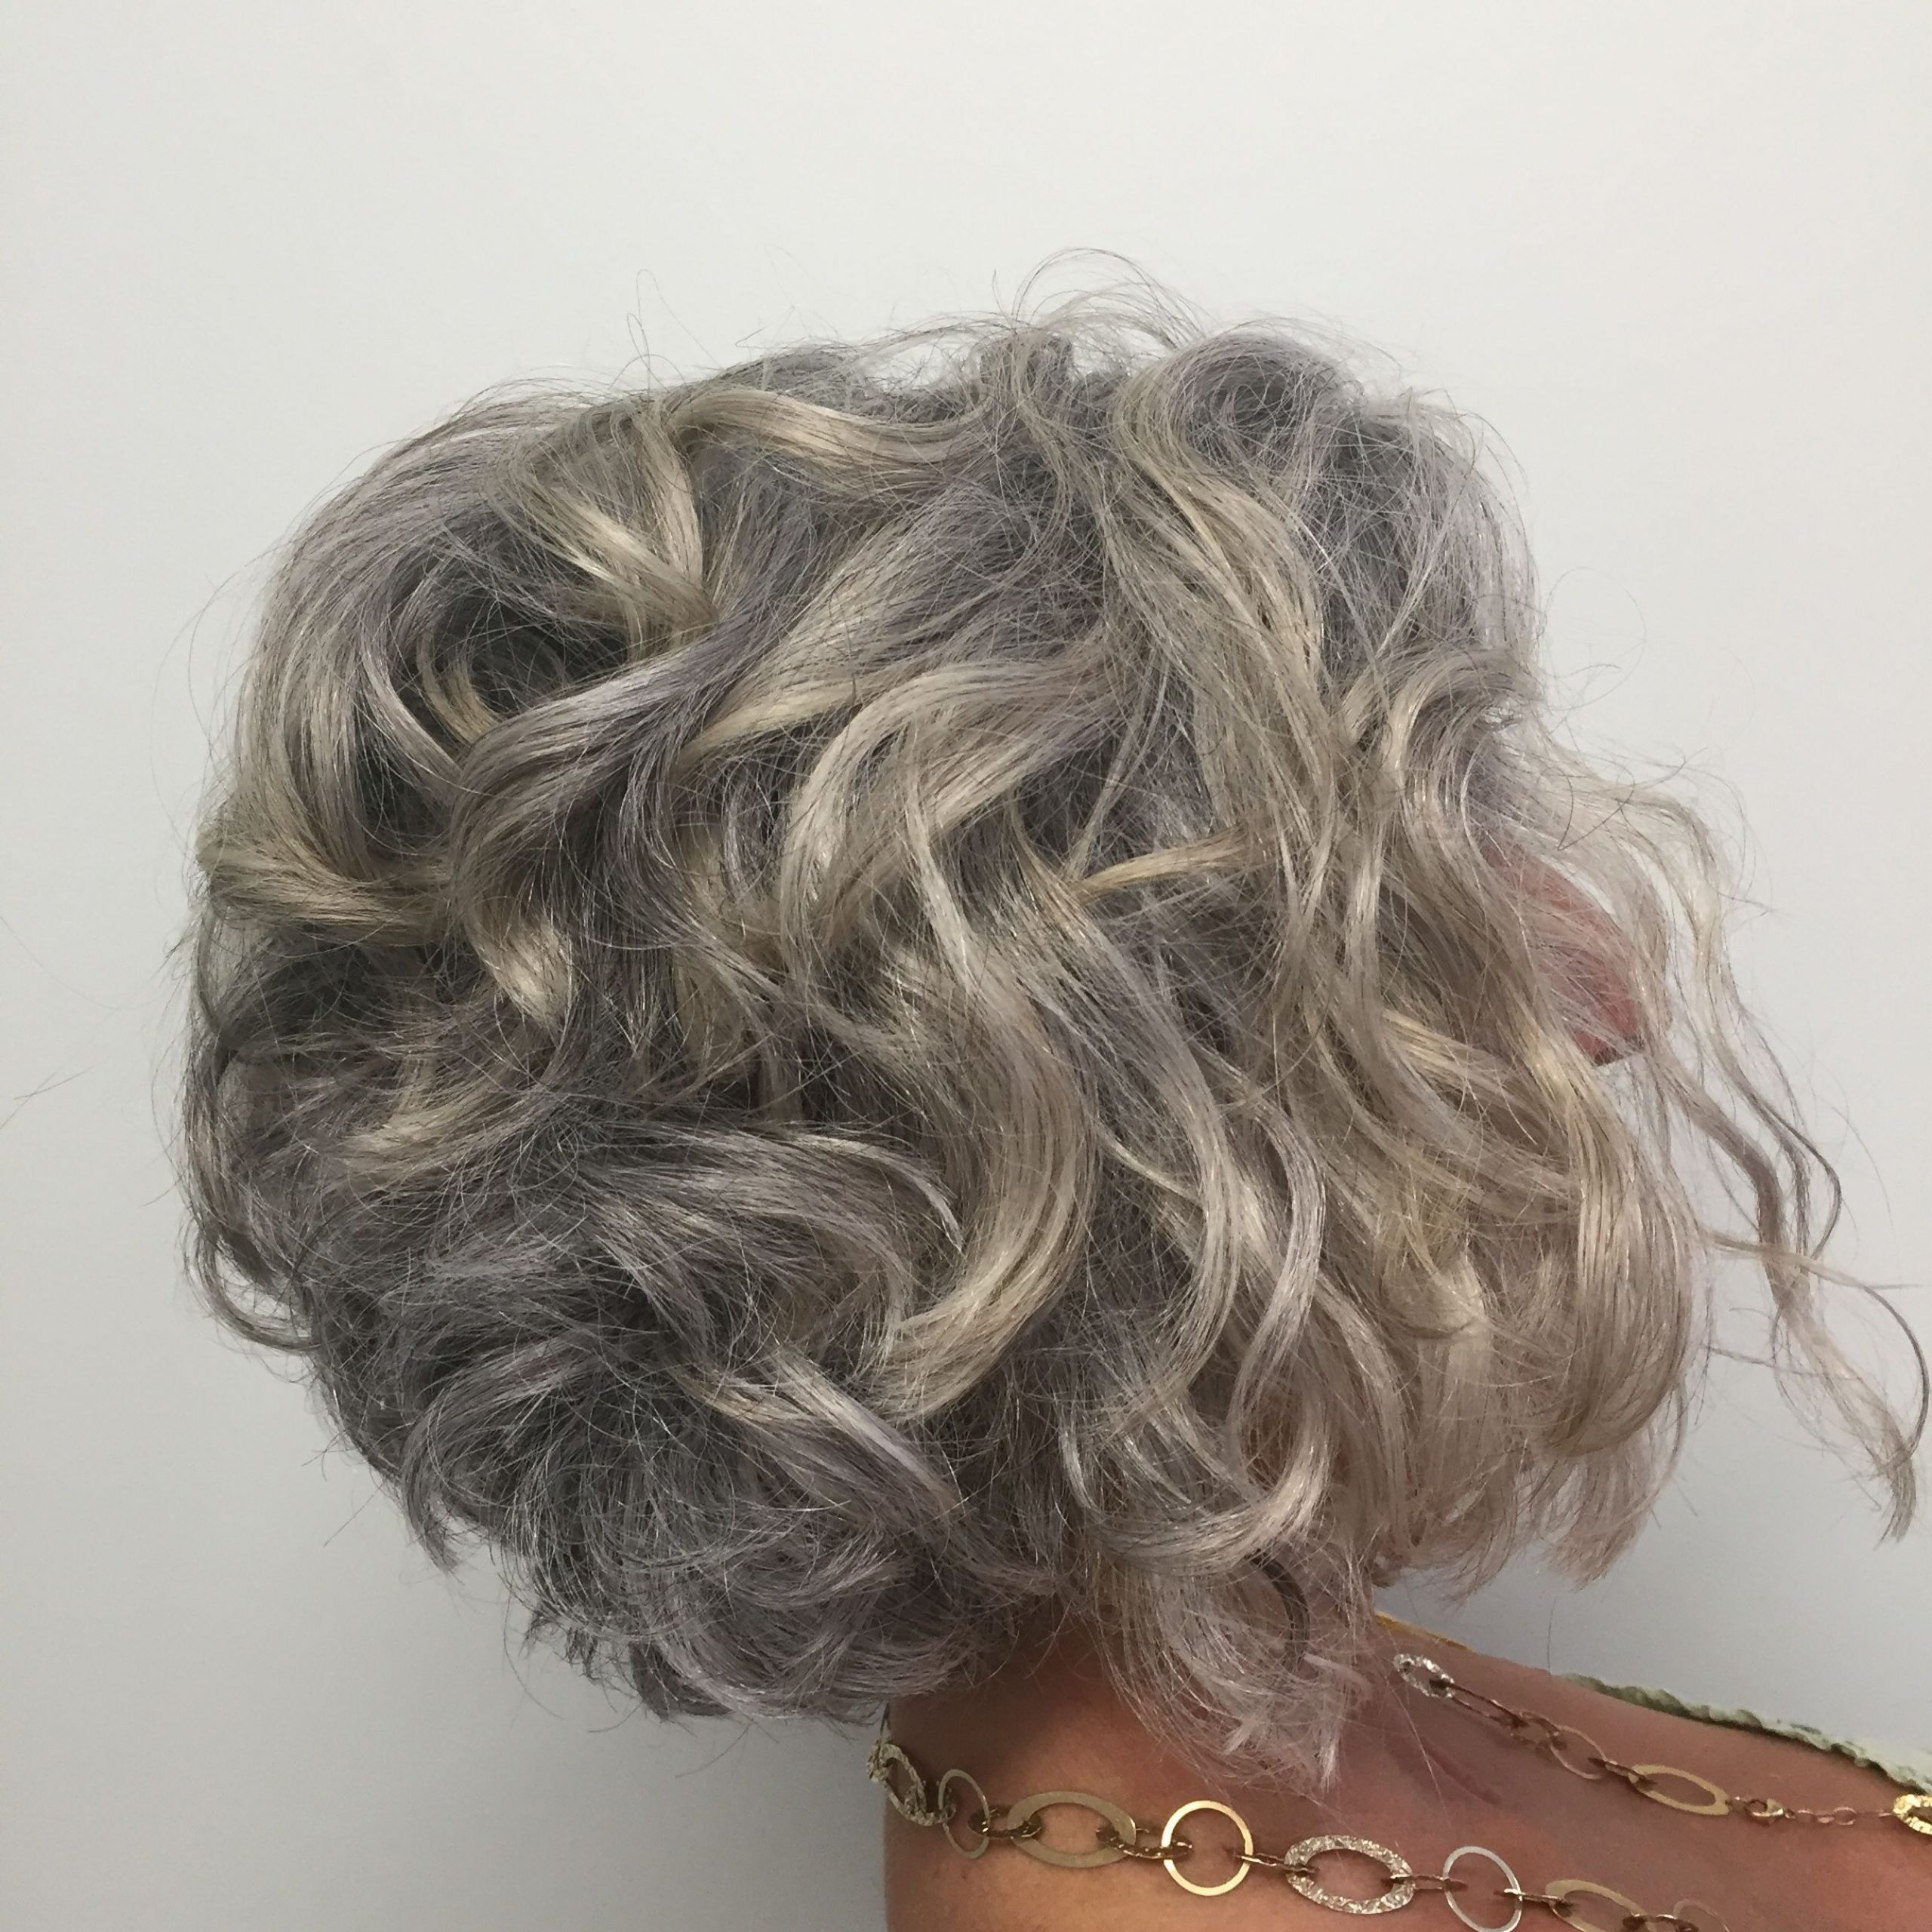 Short Curly Bob Hairstyles For Gray Hair #hairstyle (View 4 of 20)